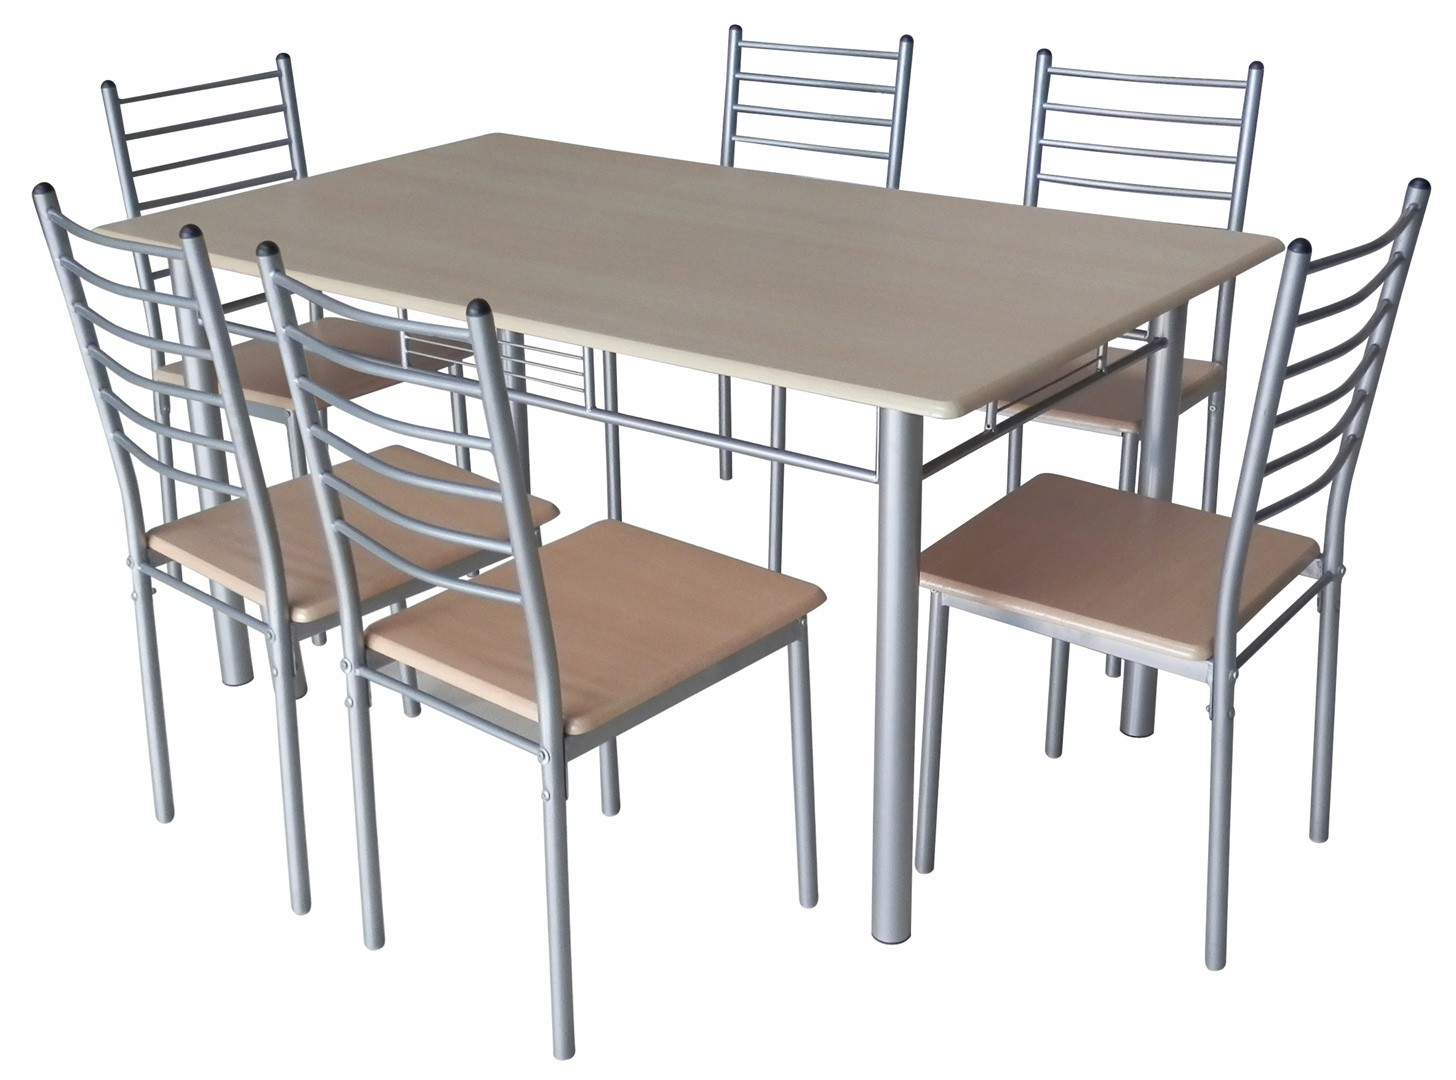 Ensemble table et chaises de cuisine but chaise id es for Table et chaise de cuisine but